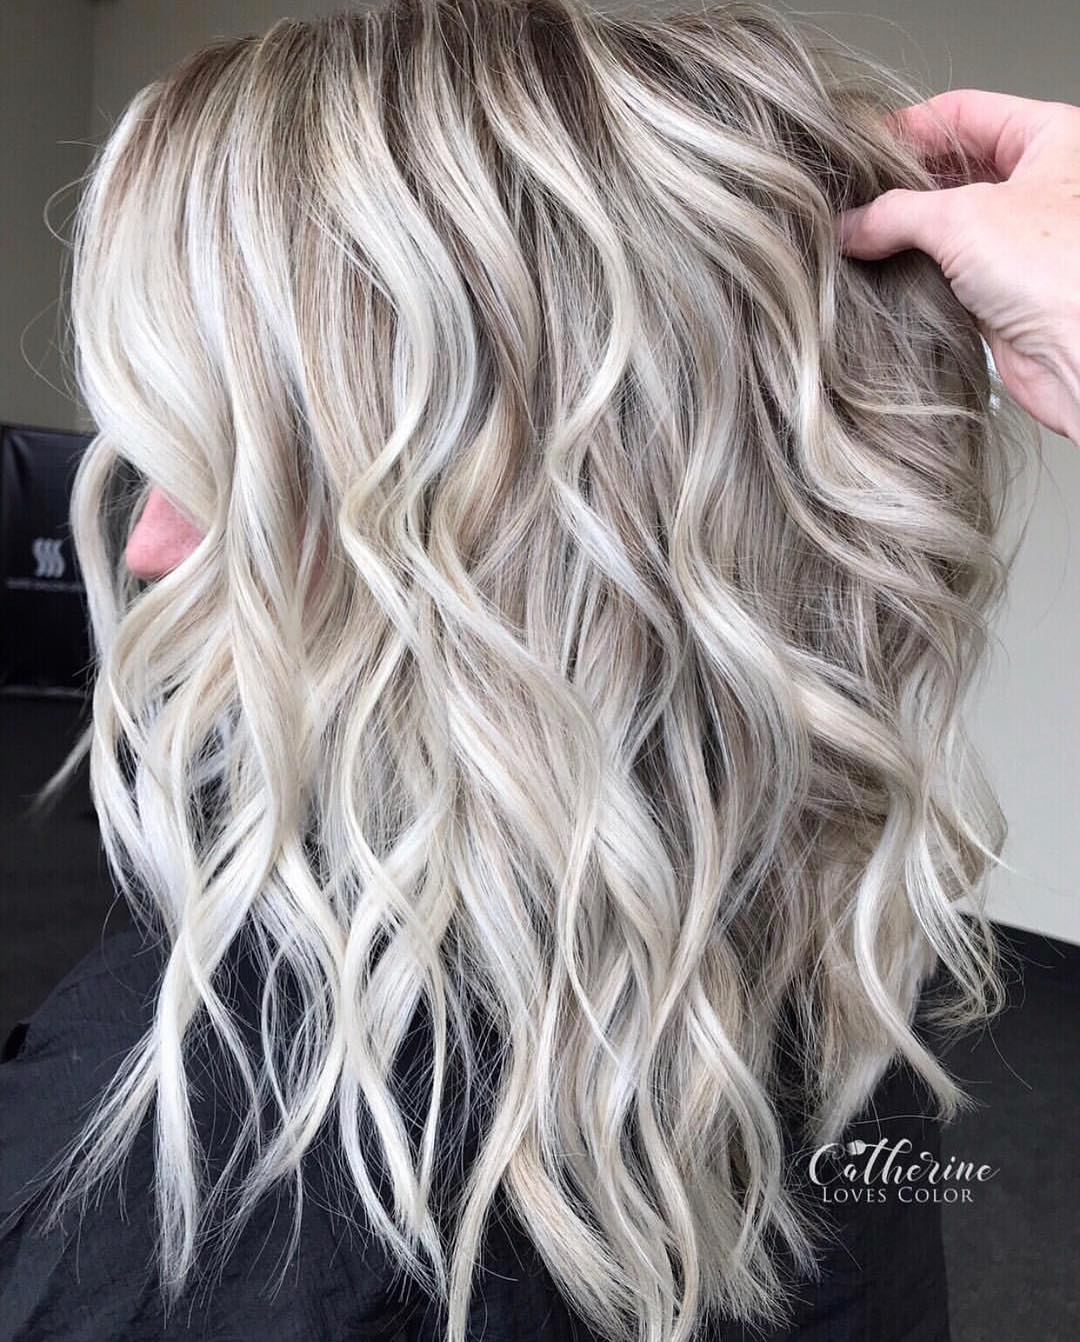 20 Caramel Highlights For Dark Brown Hair 2021 – Short Intended For Short Brown Hairstyles With Subtle Highlights (View 15 of 20)